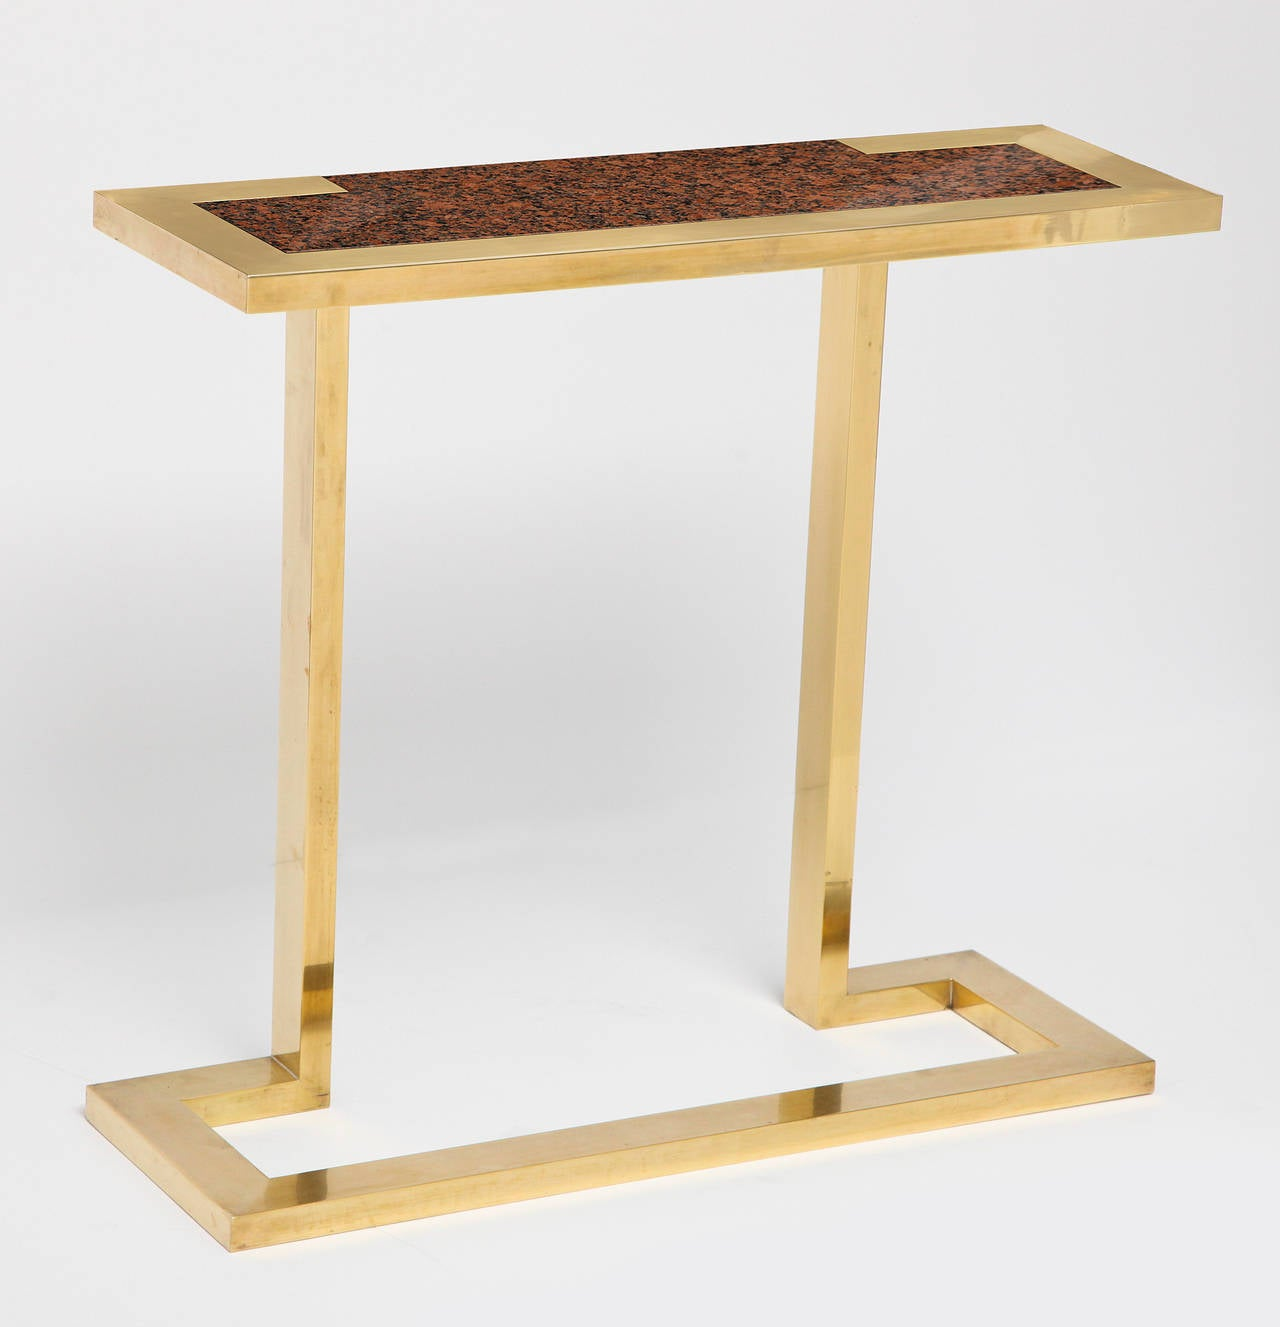 Freestanding console in brass with a granite top by Nucci Valsecchi.